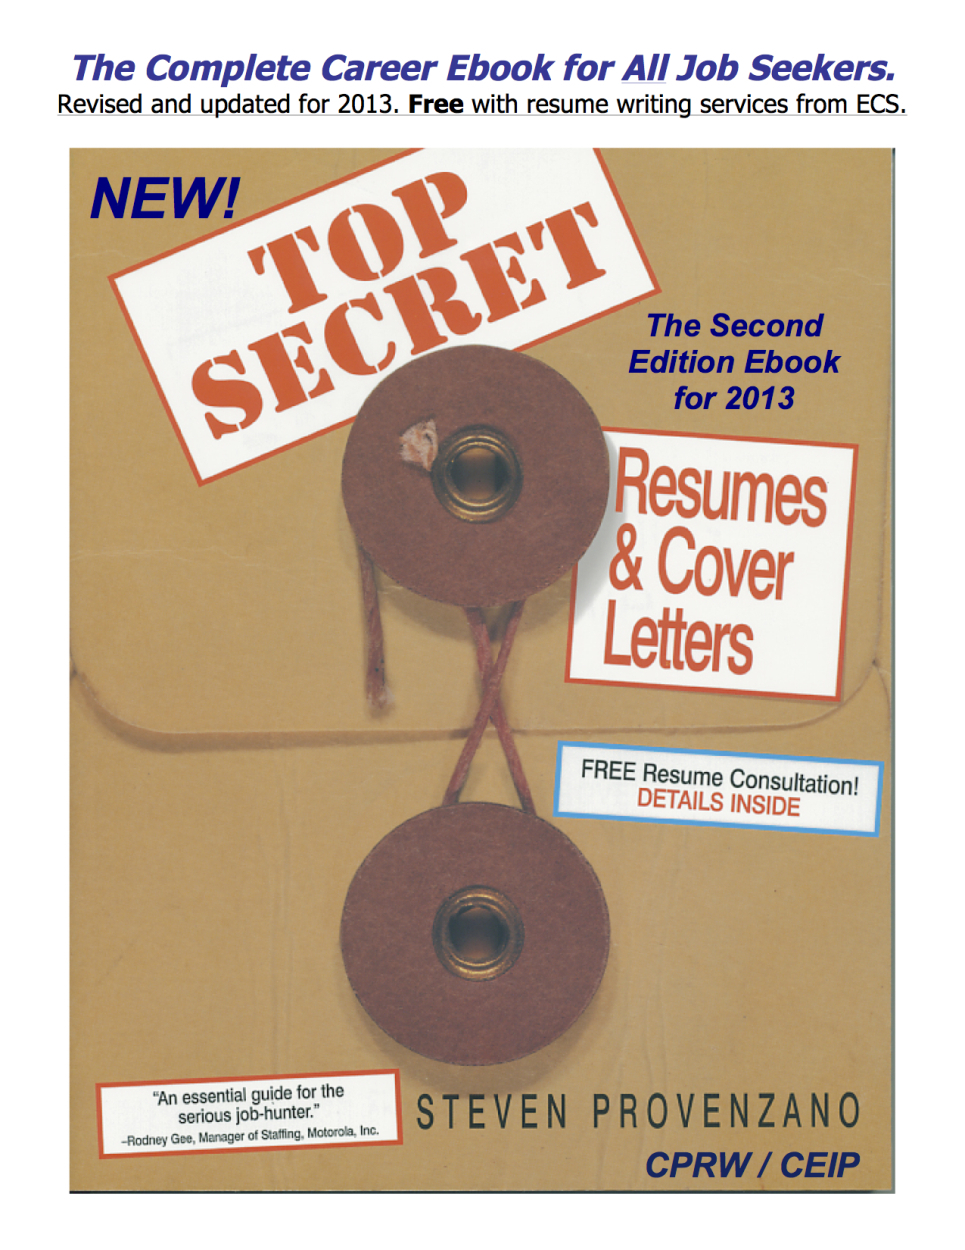 TOP SECRET Resumes & Cover Letters, the Second Edition Ebook for 2013 By: Steven Provenzano CPRW/CEIP